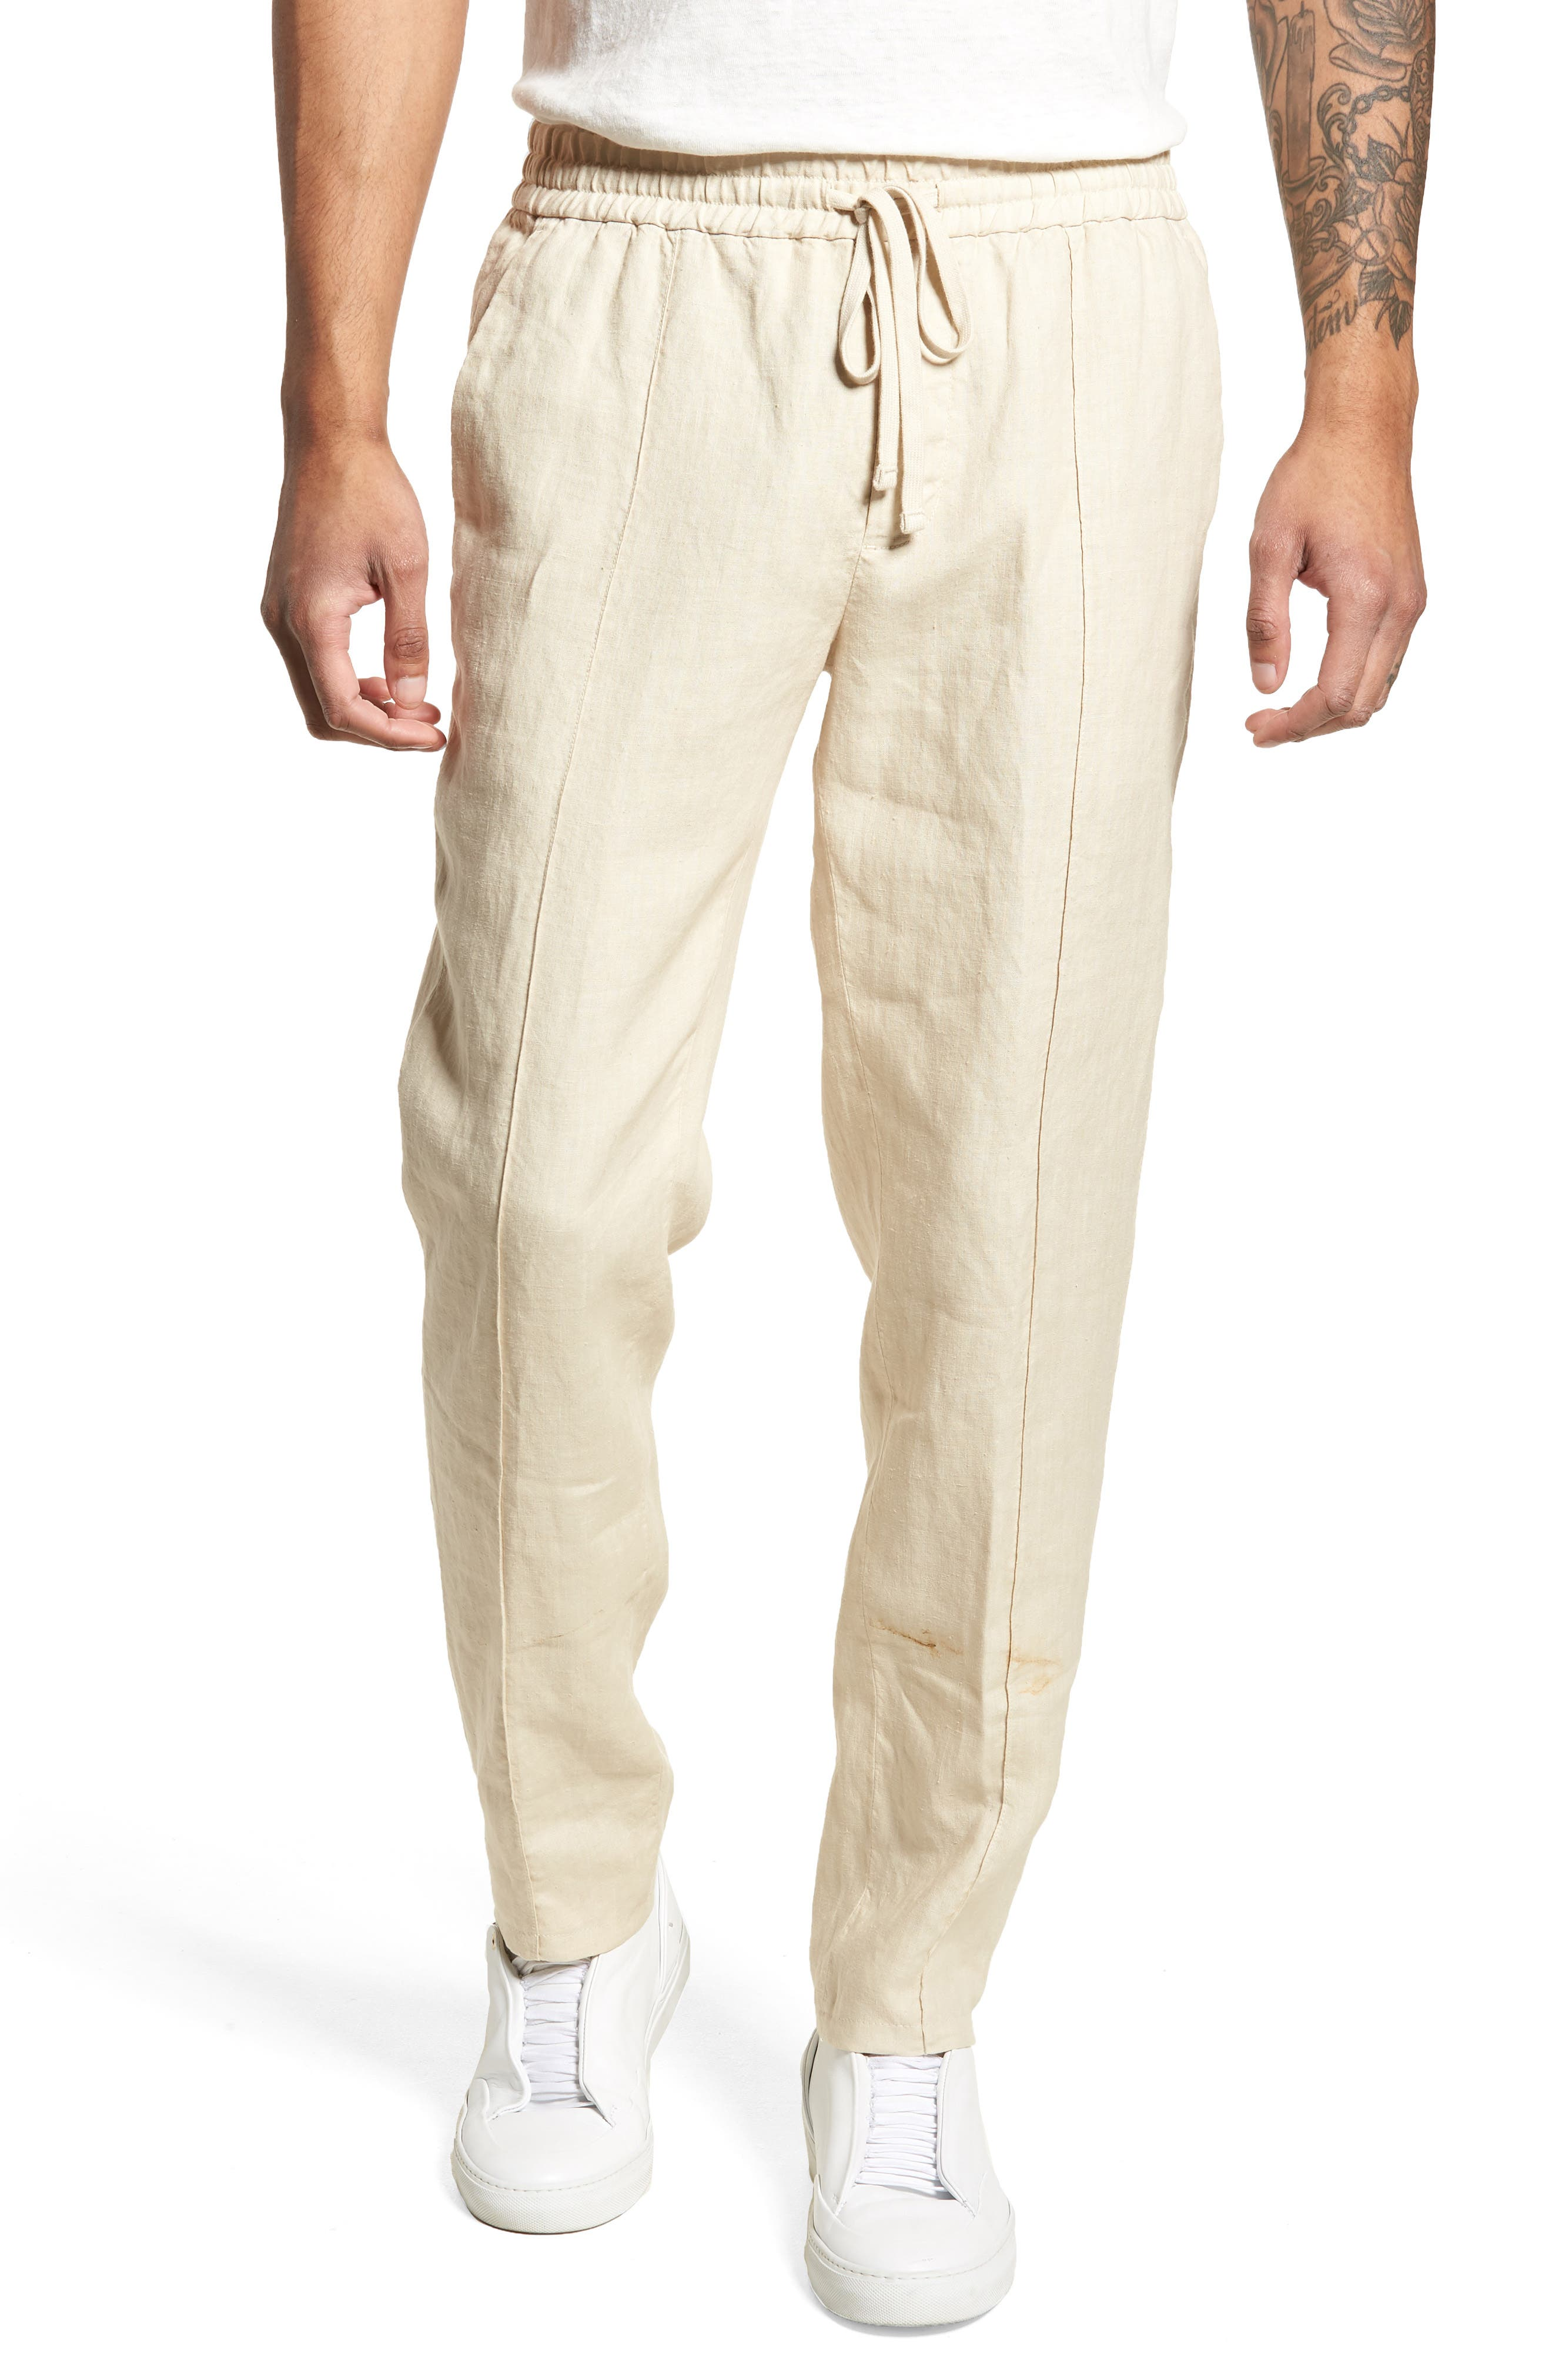 Pintuck Slim Fit Hemp Track Pants,                         Main,                         color, White Sand